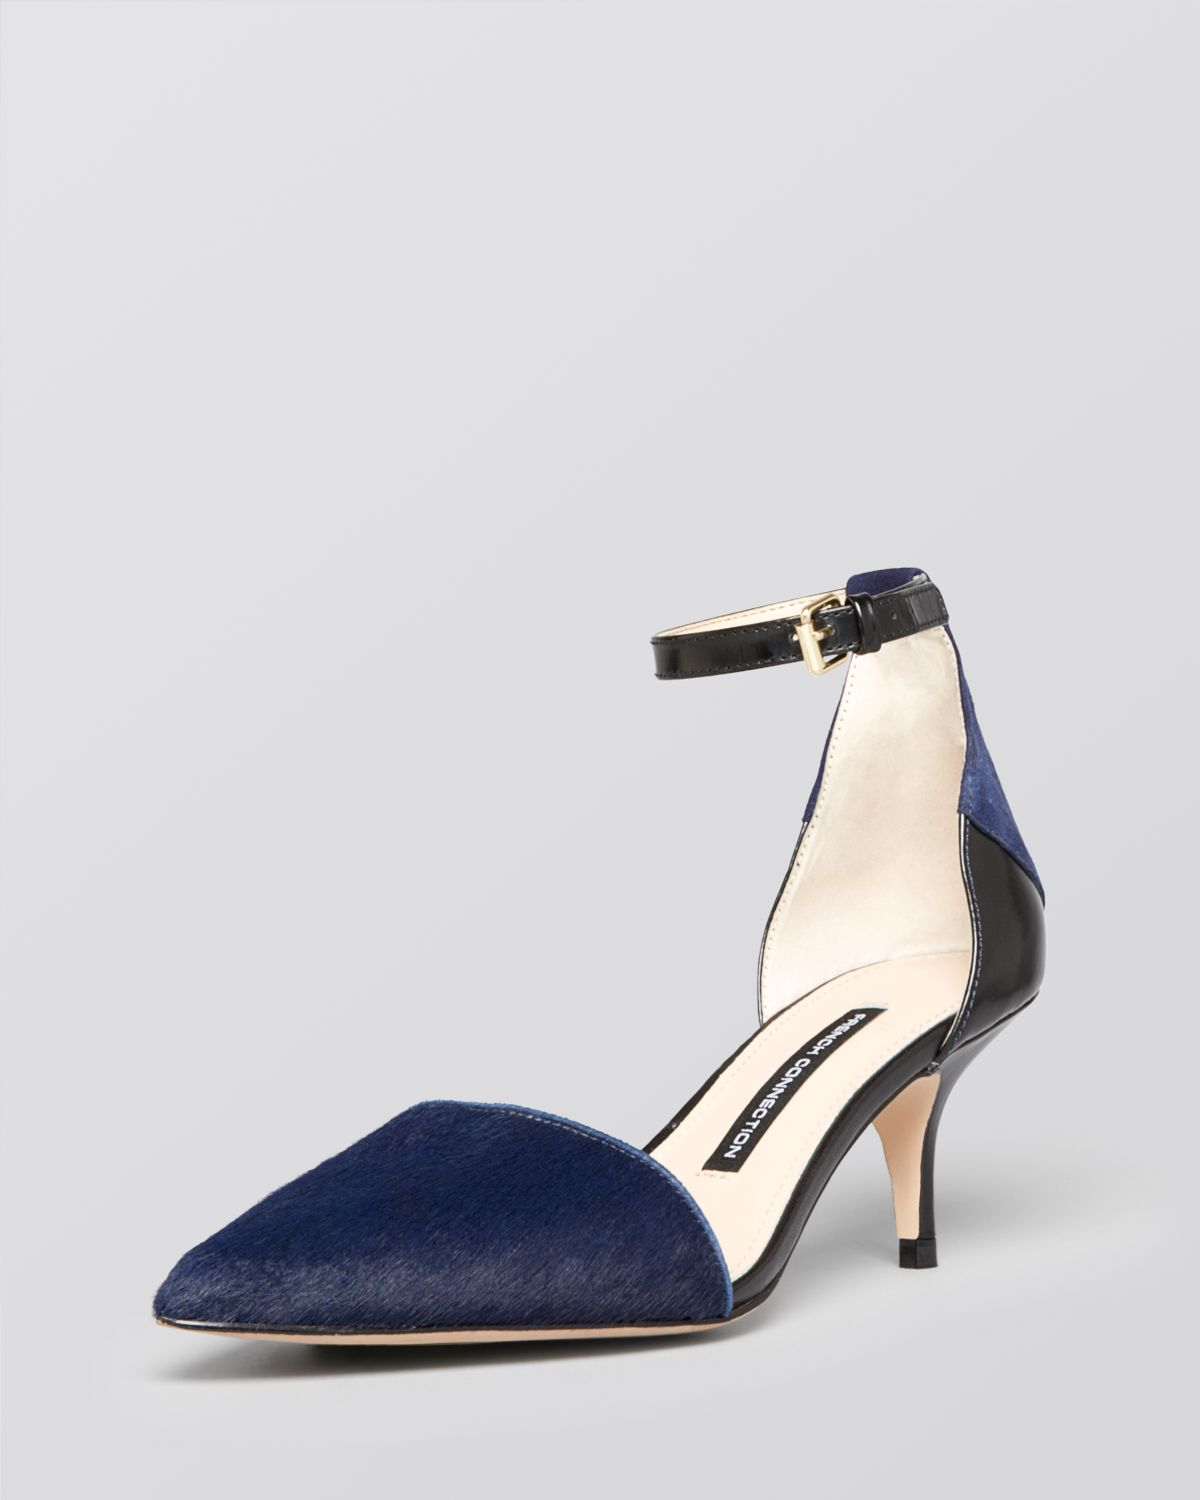 Lyst - French connection Pointed Toe Pumps - Enora Kitten Heel in ...